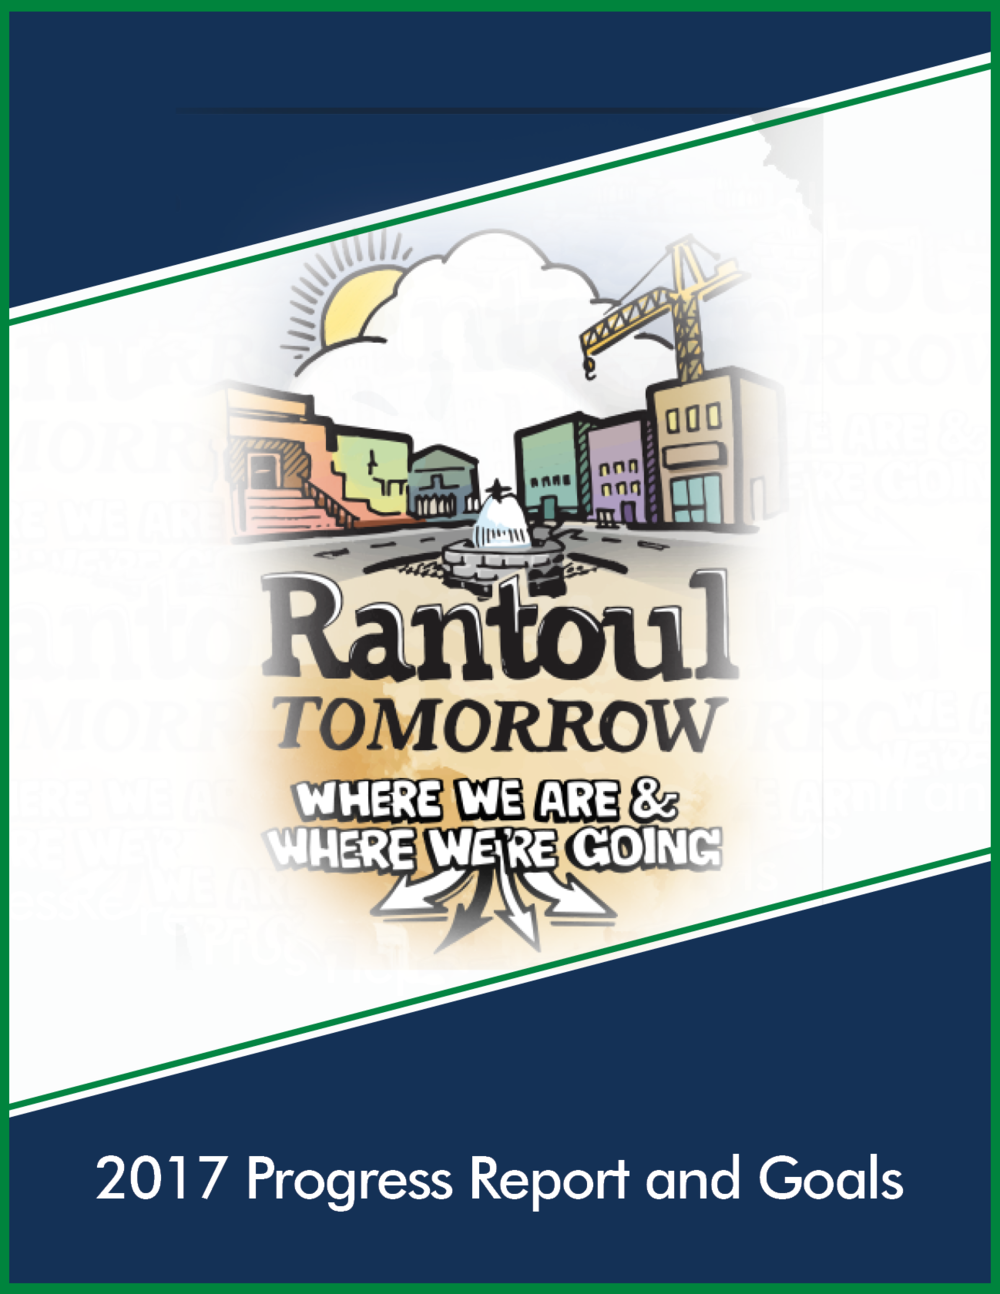 Rantoul Tomorrow 2017 Progress report FINAL.png